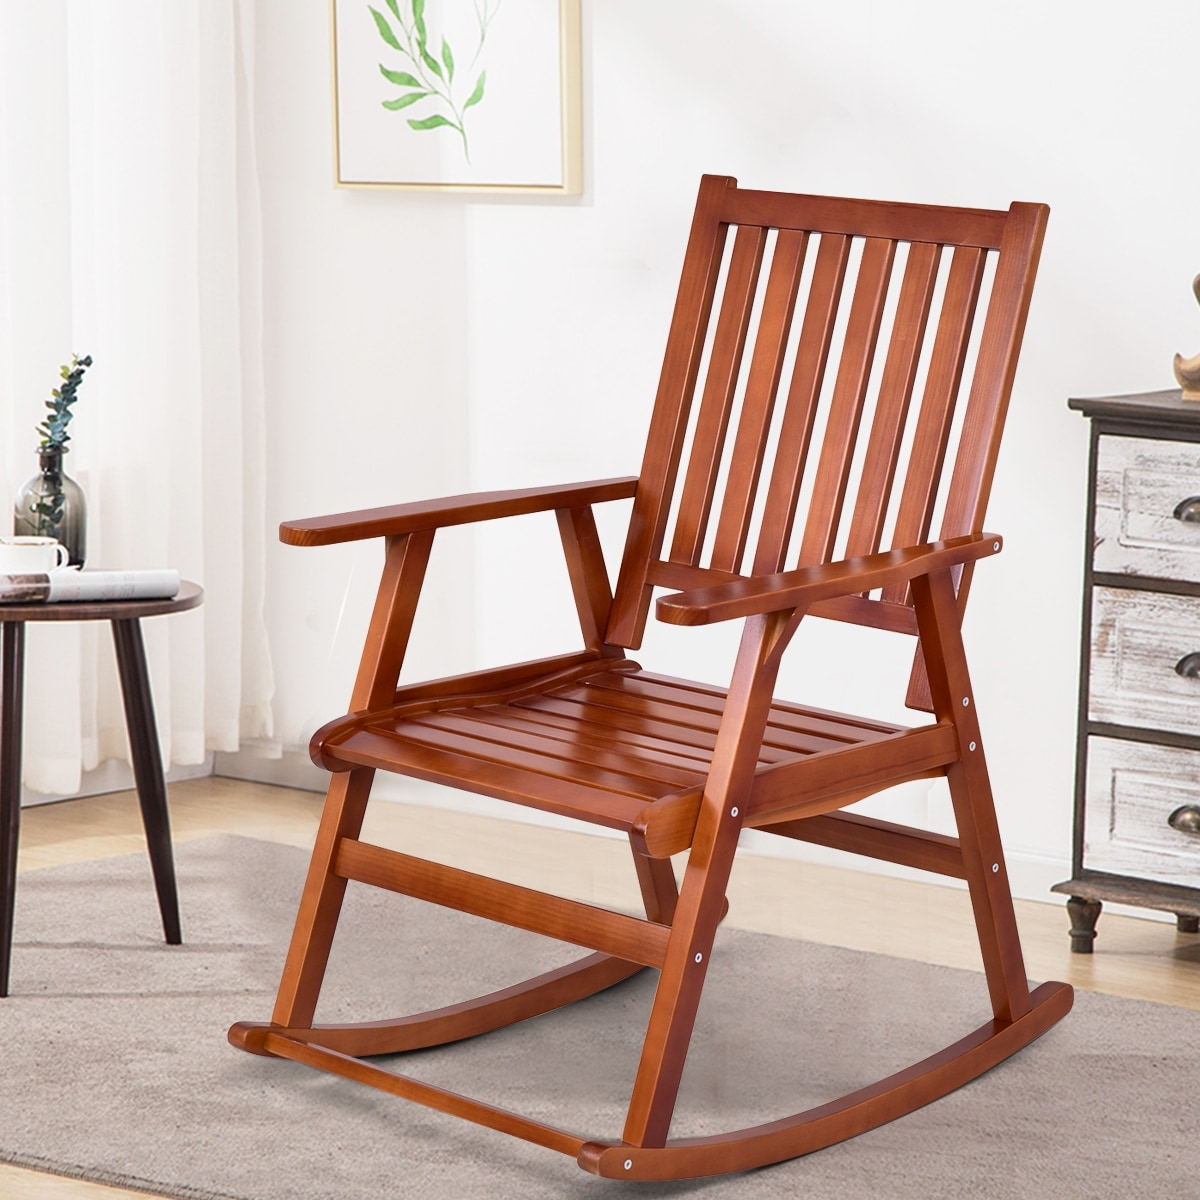 Wood Rocking Chair Details About Single Porch Rocker Chair Comfortable Wood Pine Indoor Outdoor Patio Furniture